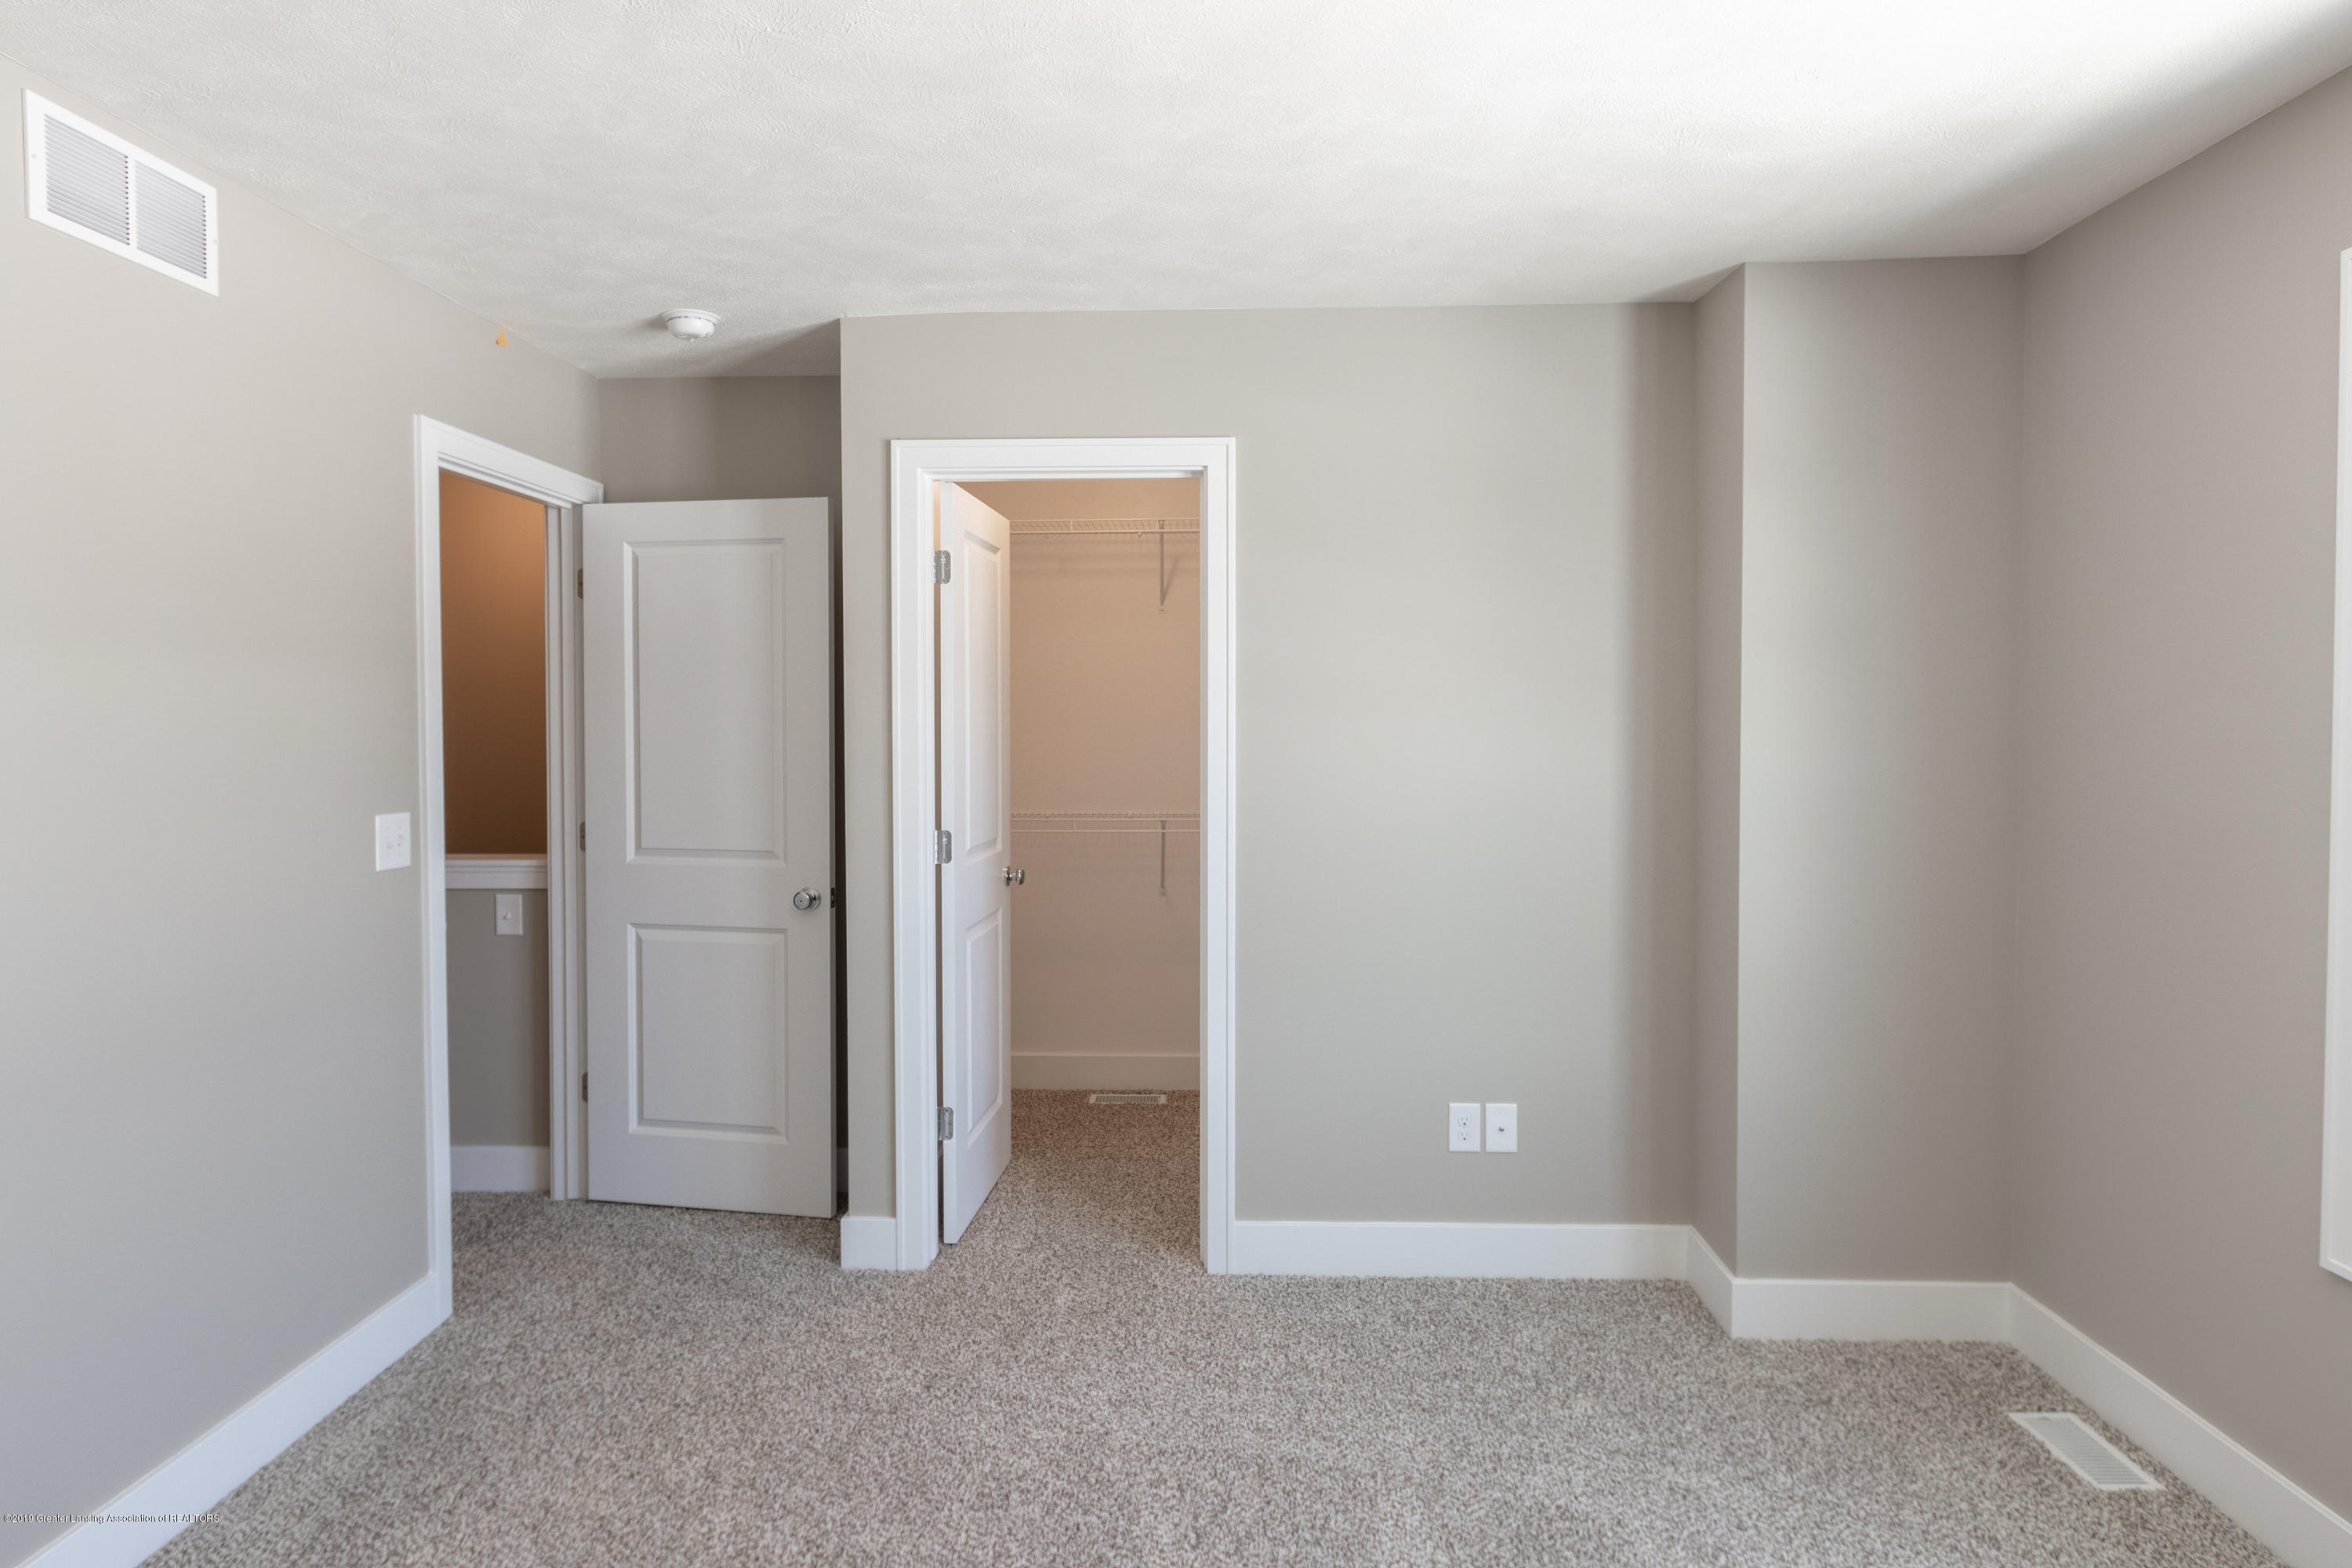 3848 Fossum Ln 10 - LL Bedroom - 29